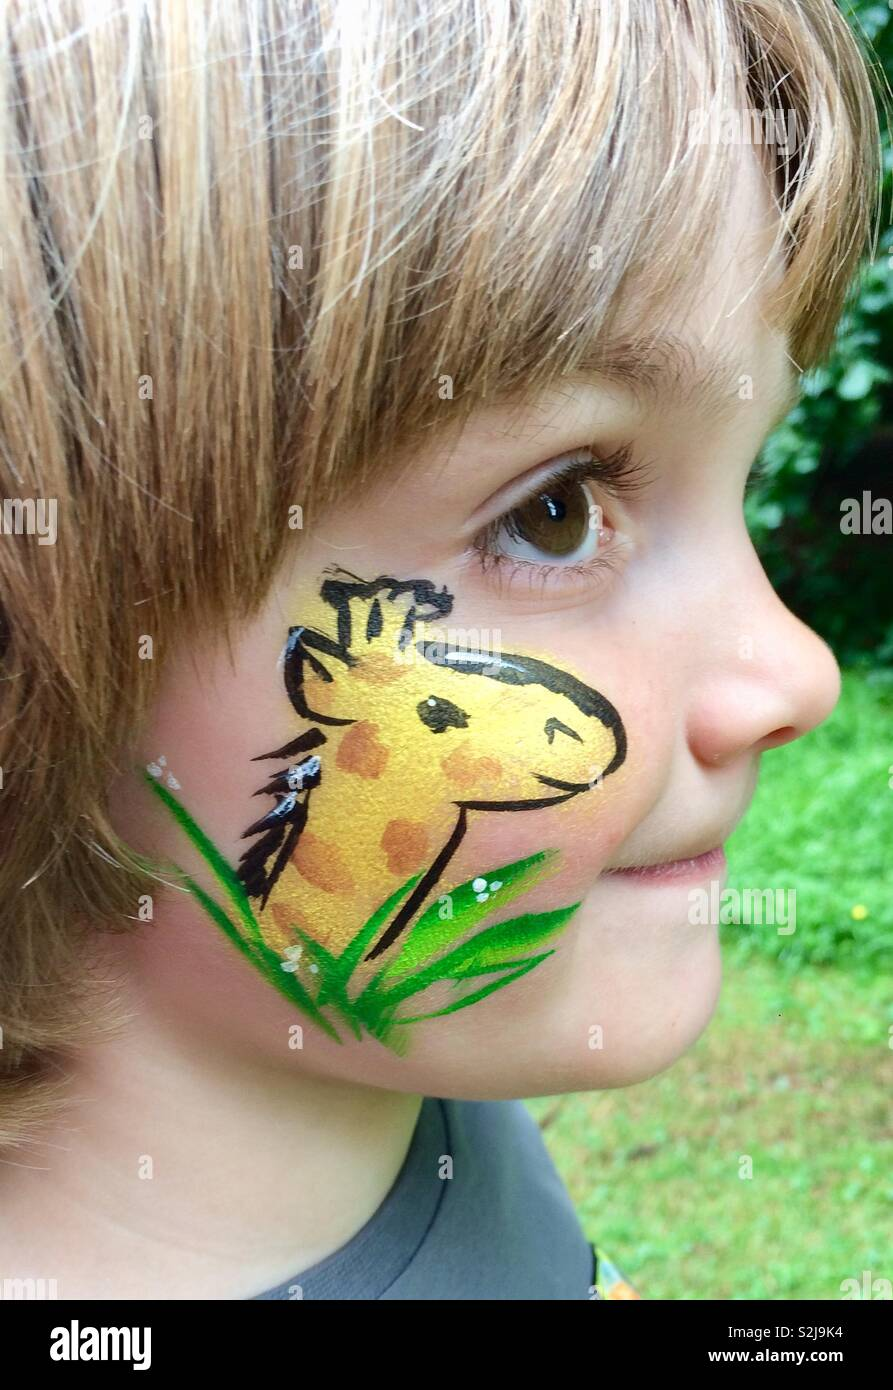 Boy with giraffe face paint - Stock Image